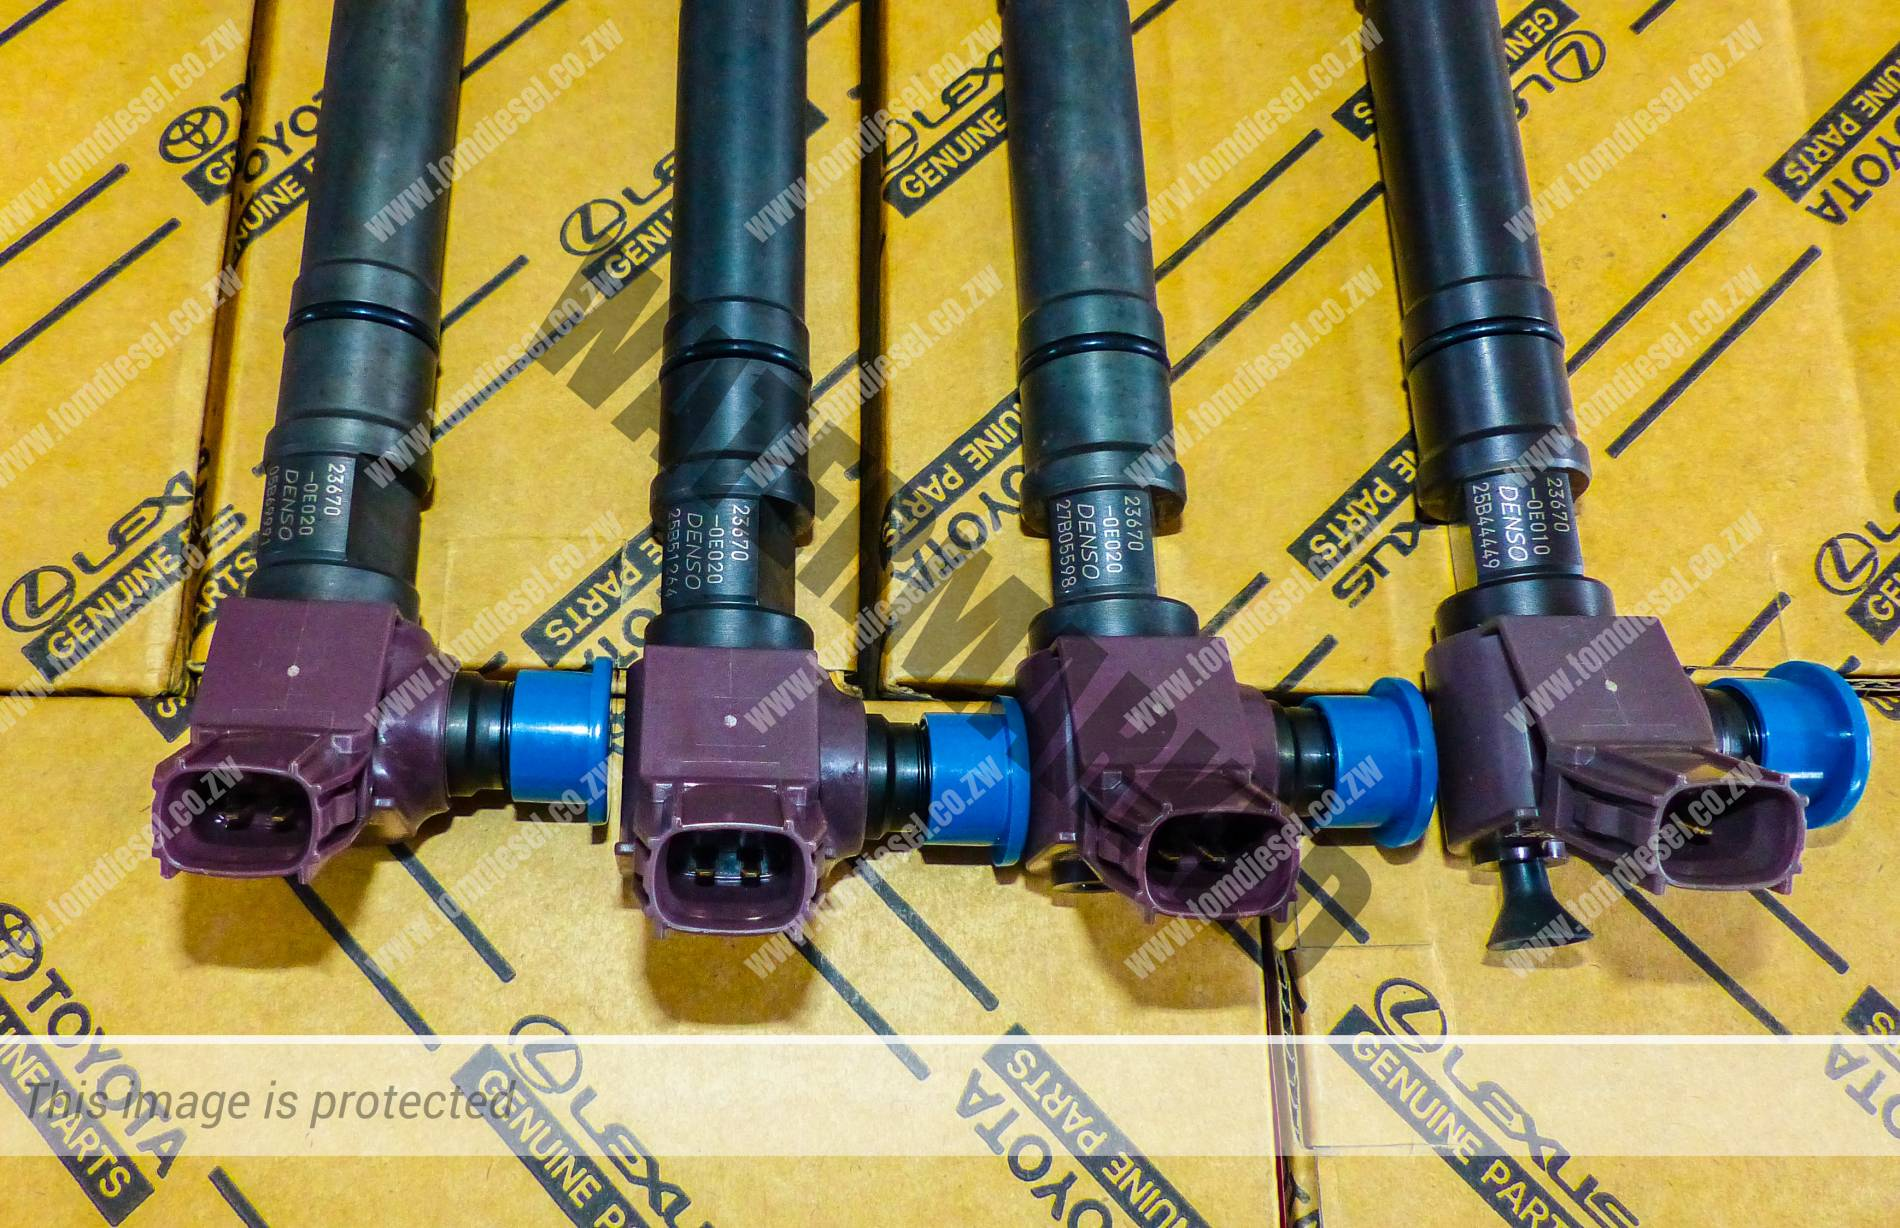 toyota gd6 2.8 injectors for sale and reconditioning